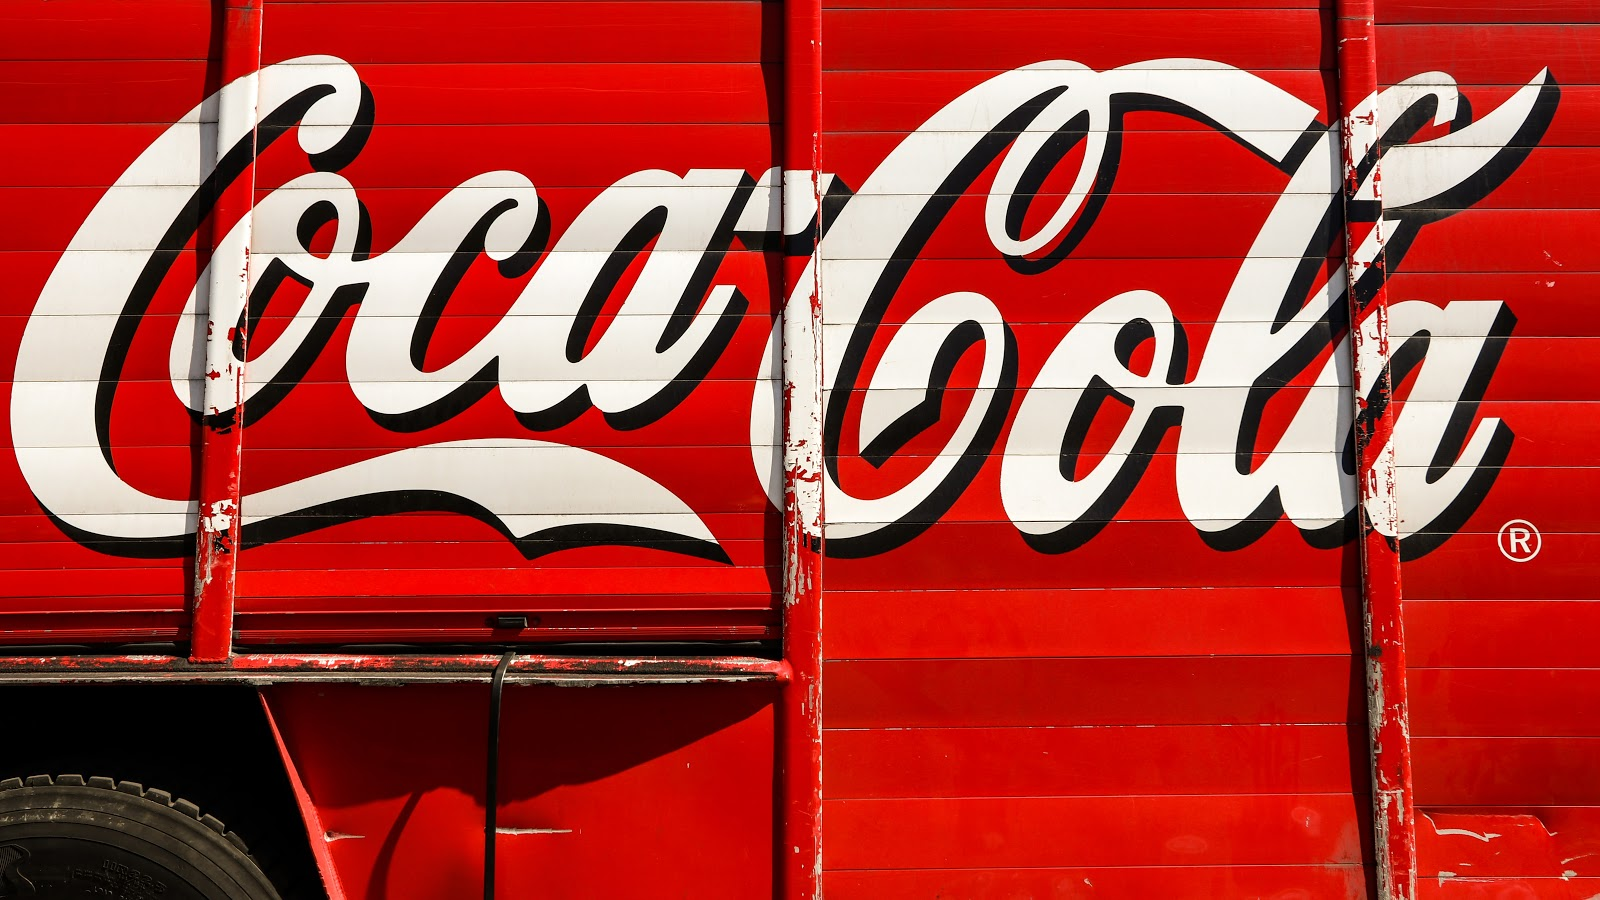 Why is the Coca-Cola logo good?